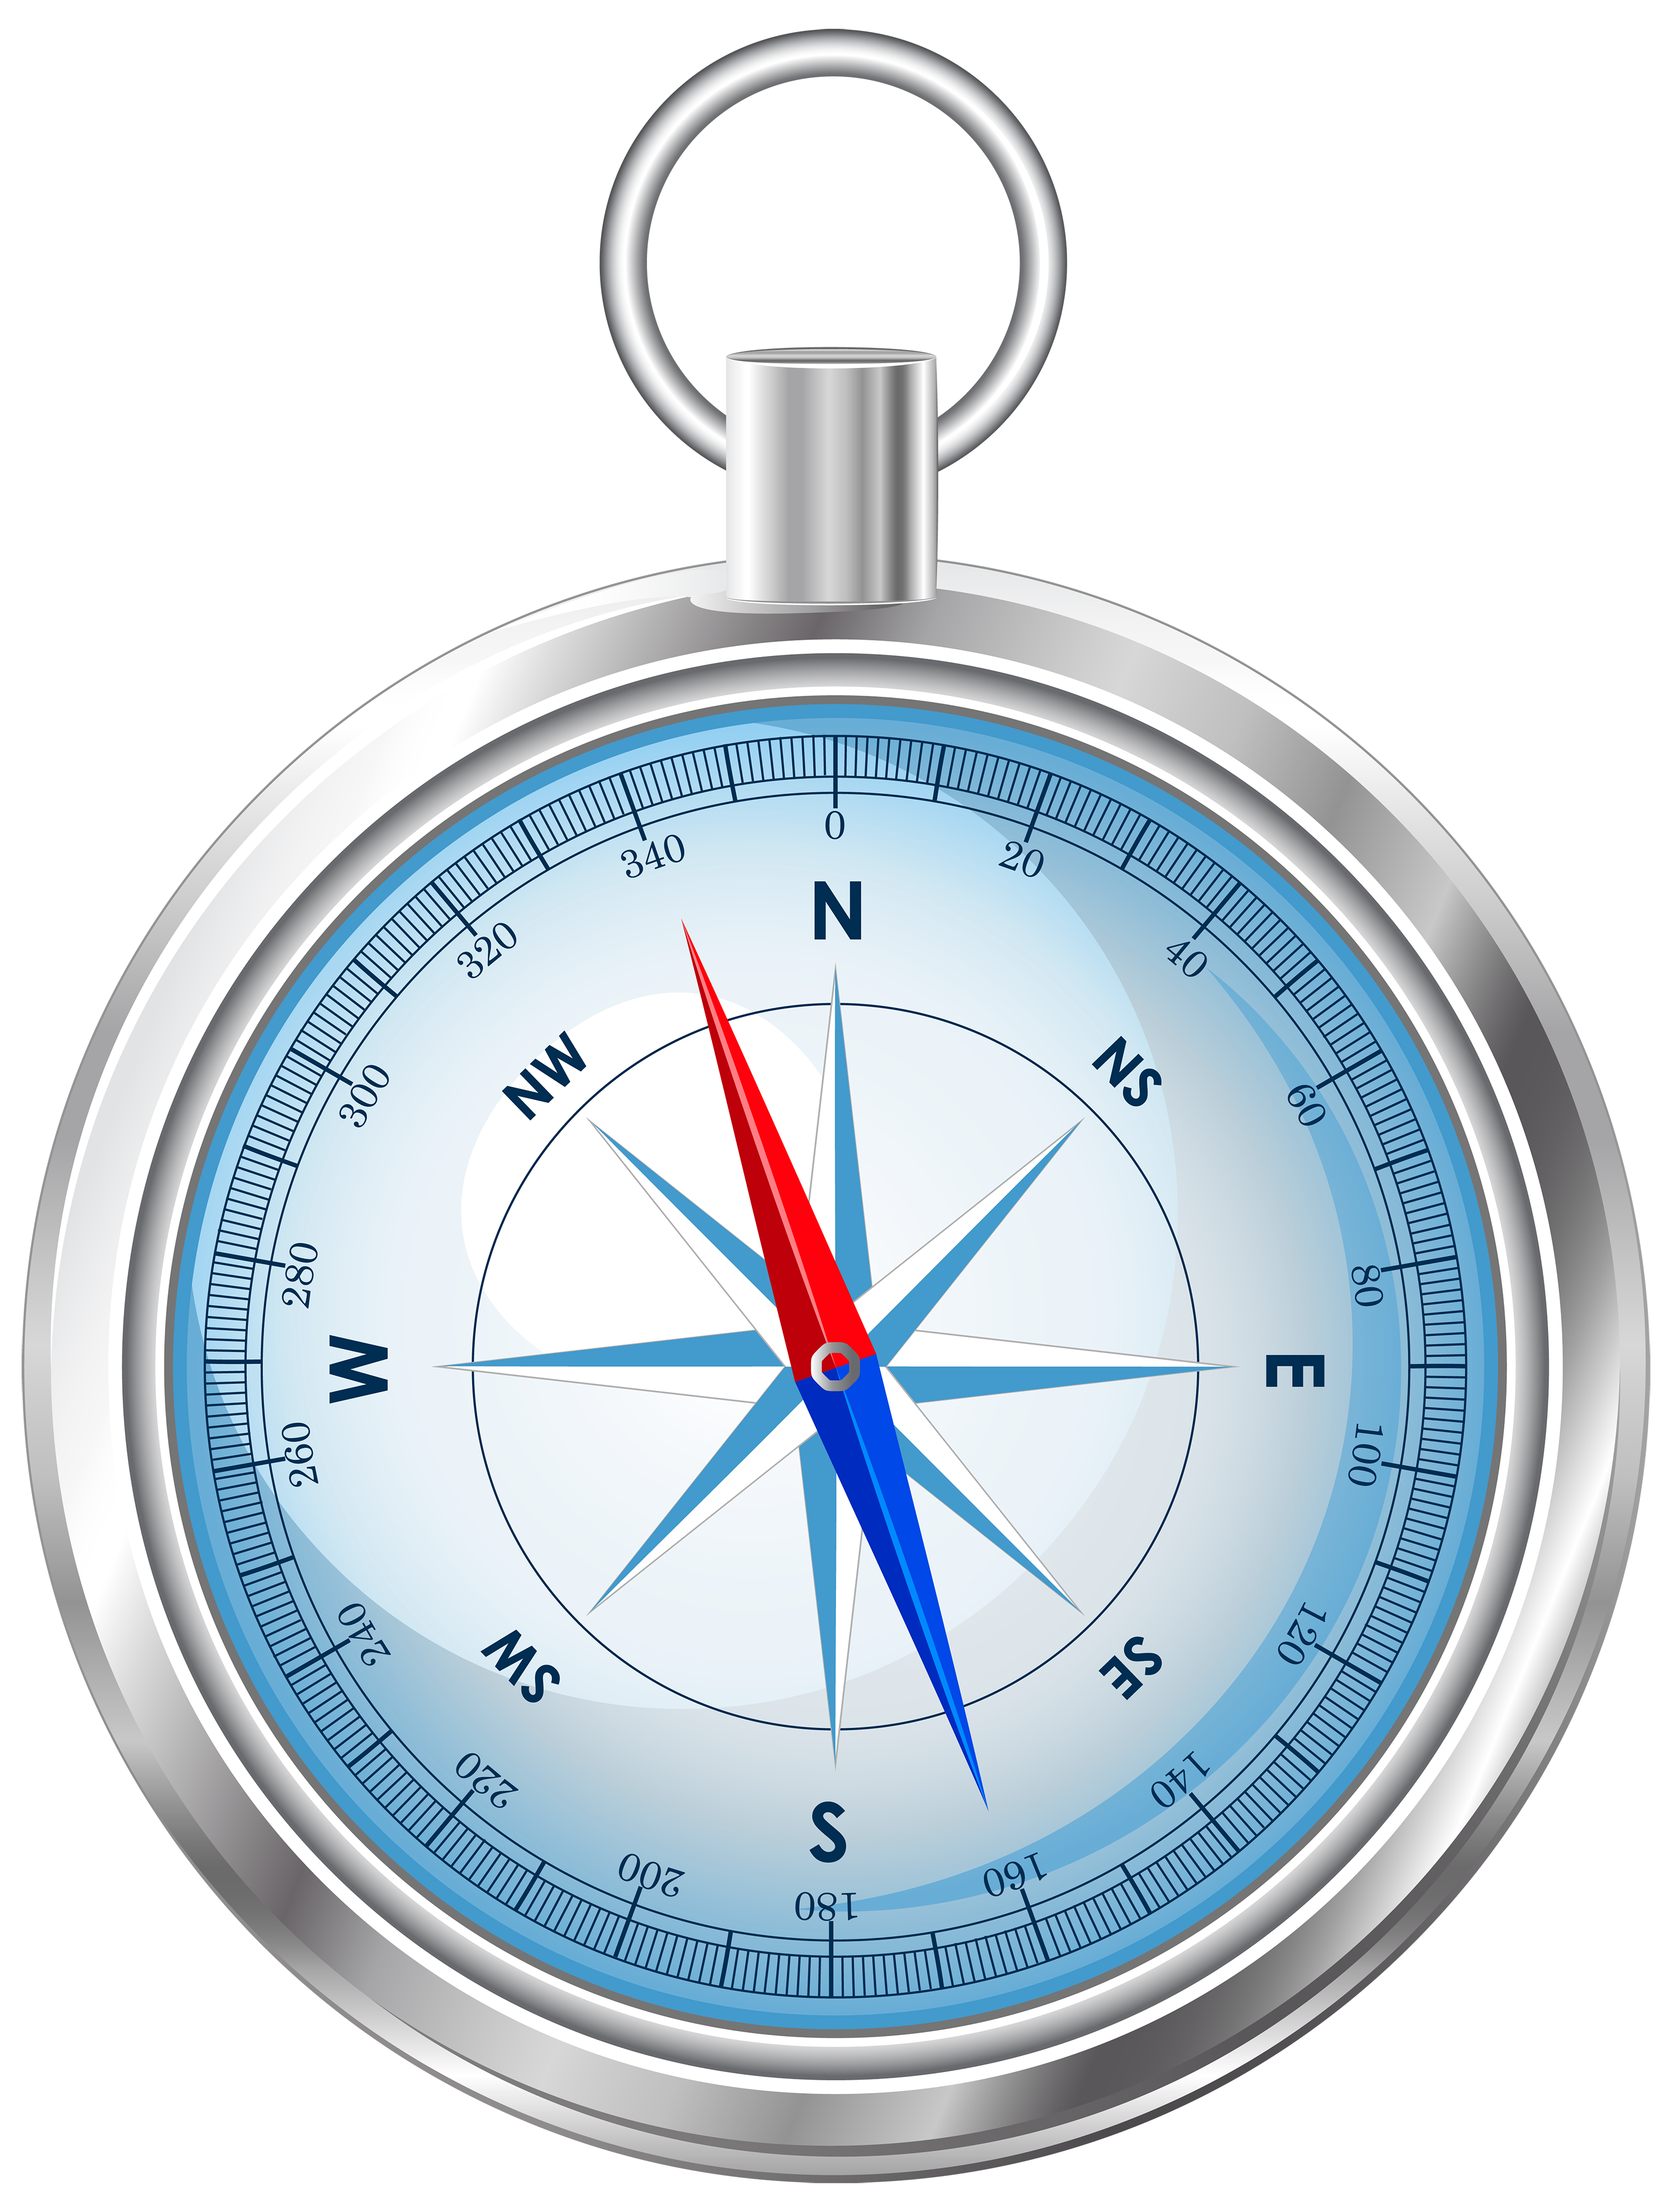 vector royalty free stock Clocks clipart compass. Png image gallery yopriceville.